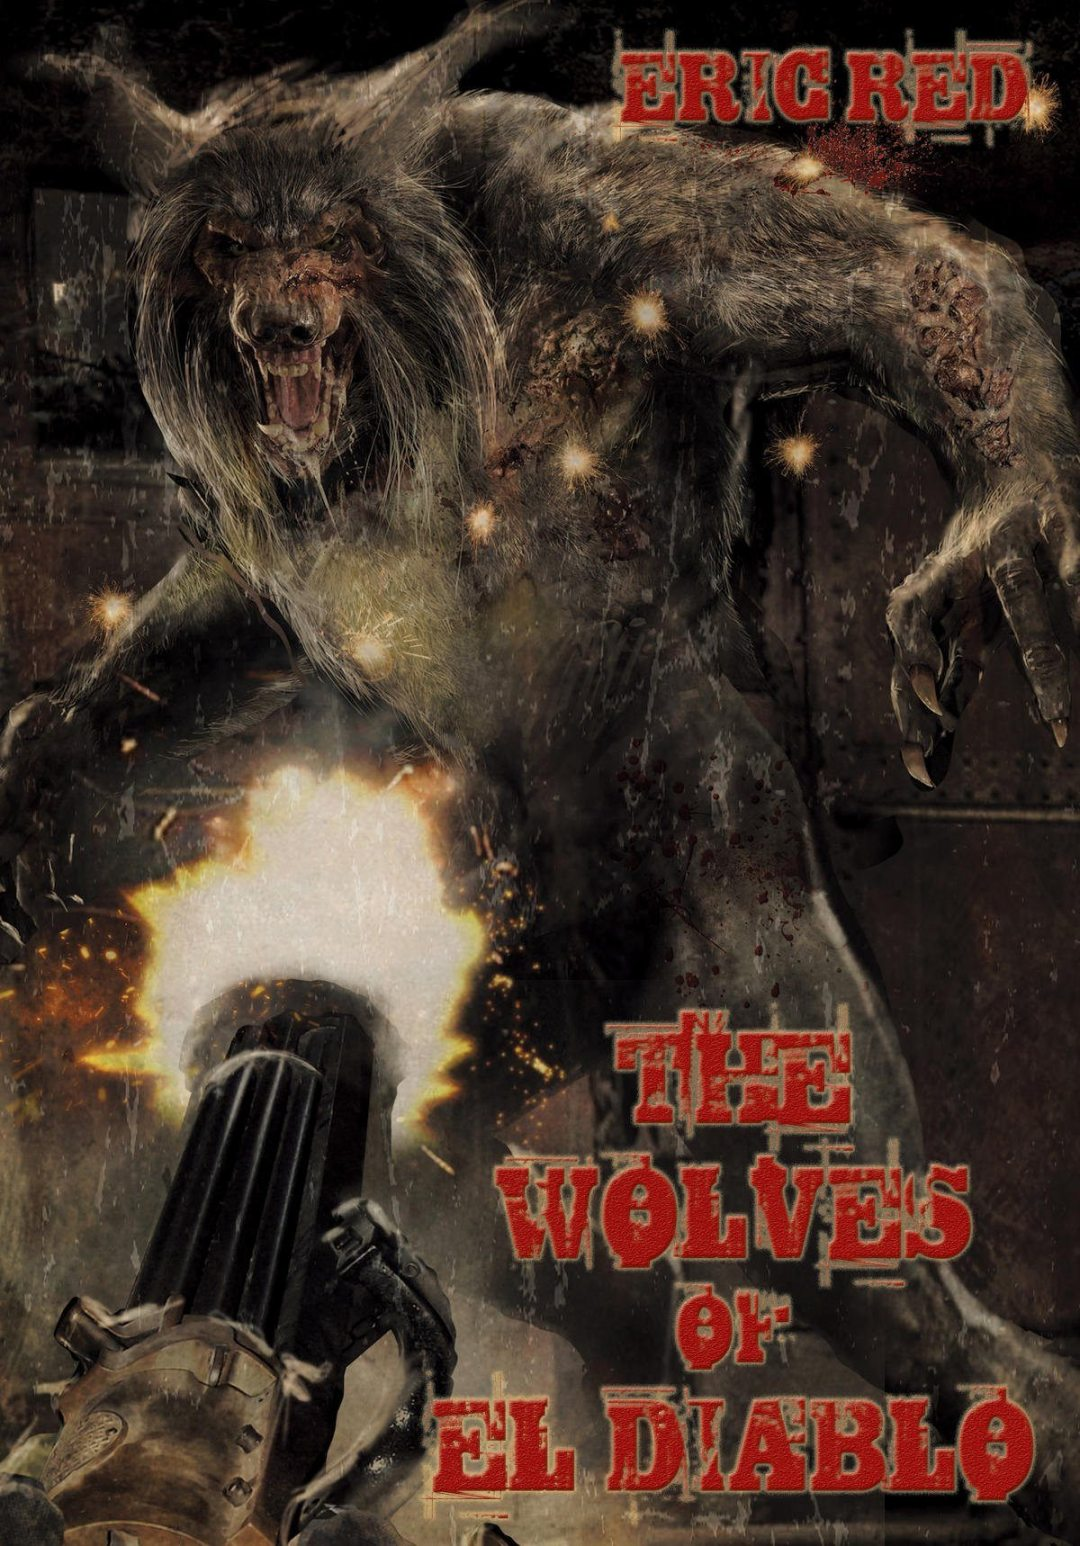 Are You Ready To Check Out 'The Wolves of El Diablo?'